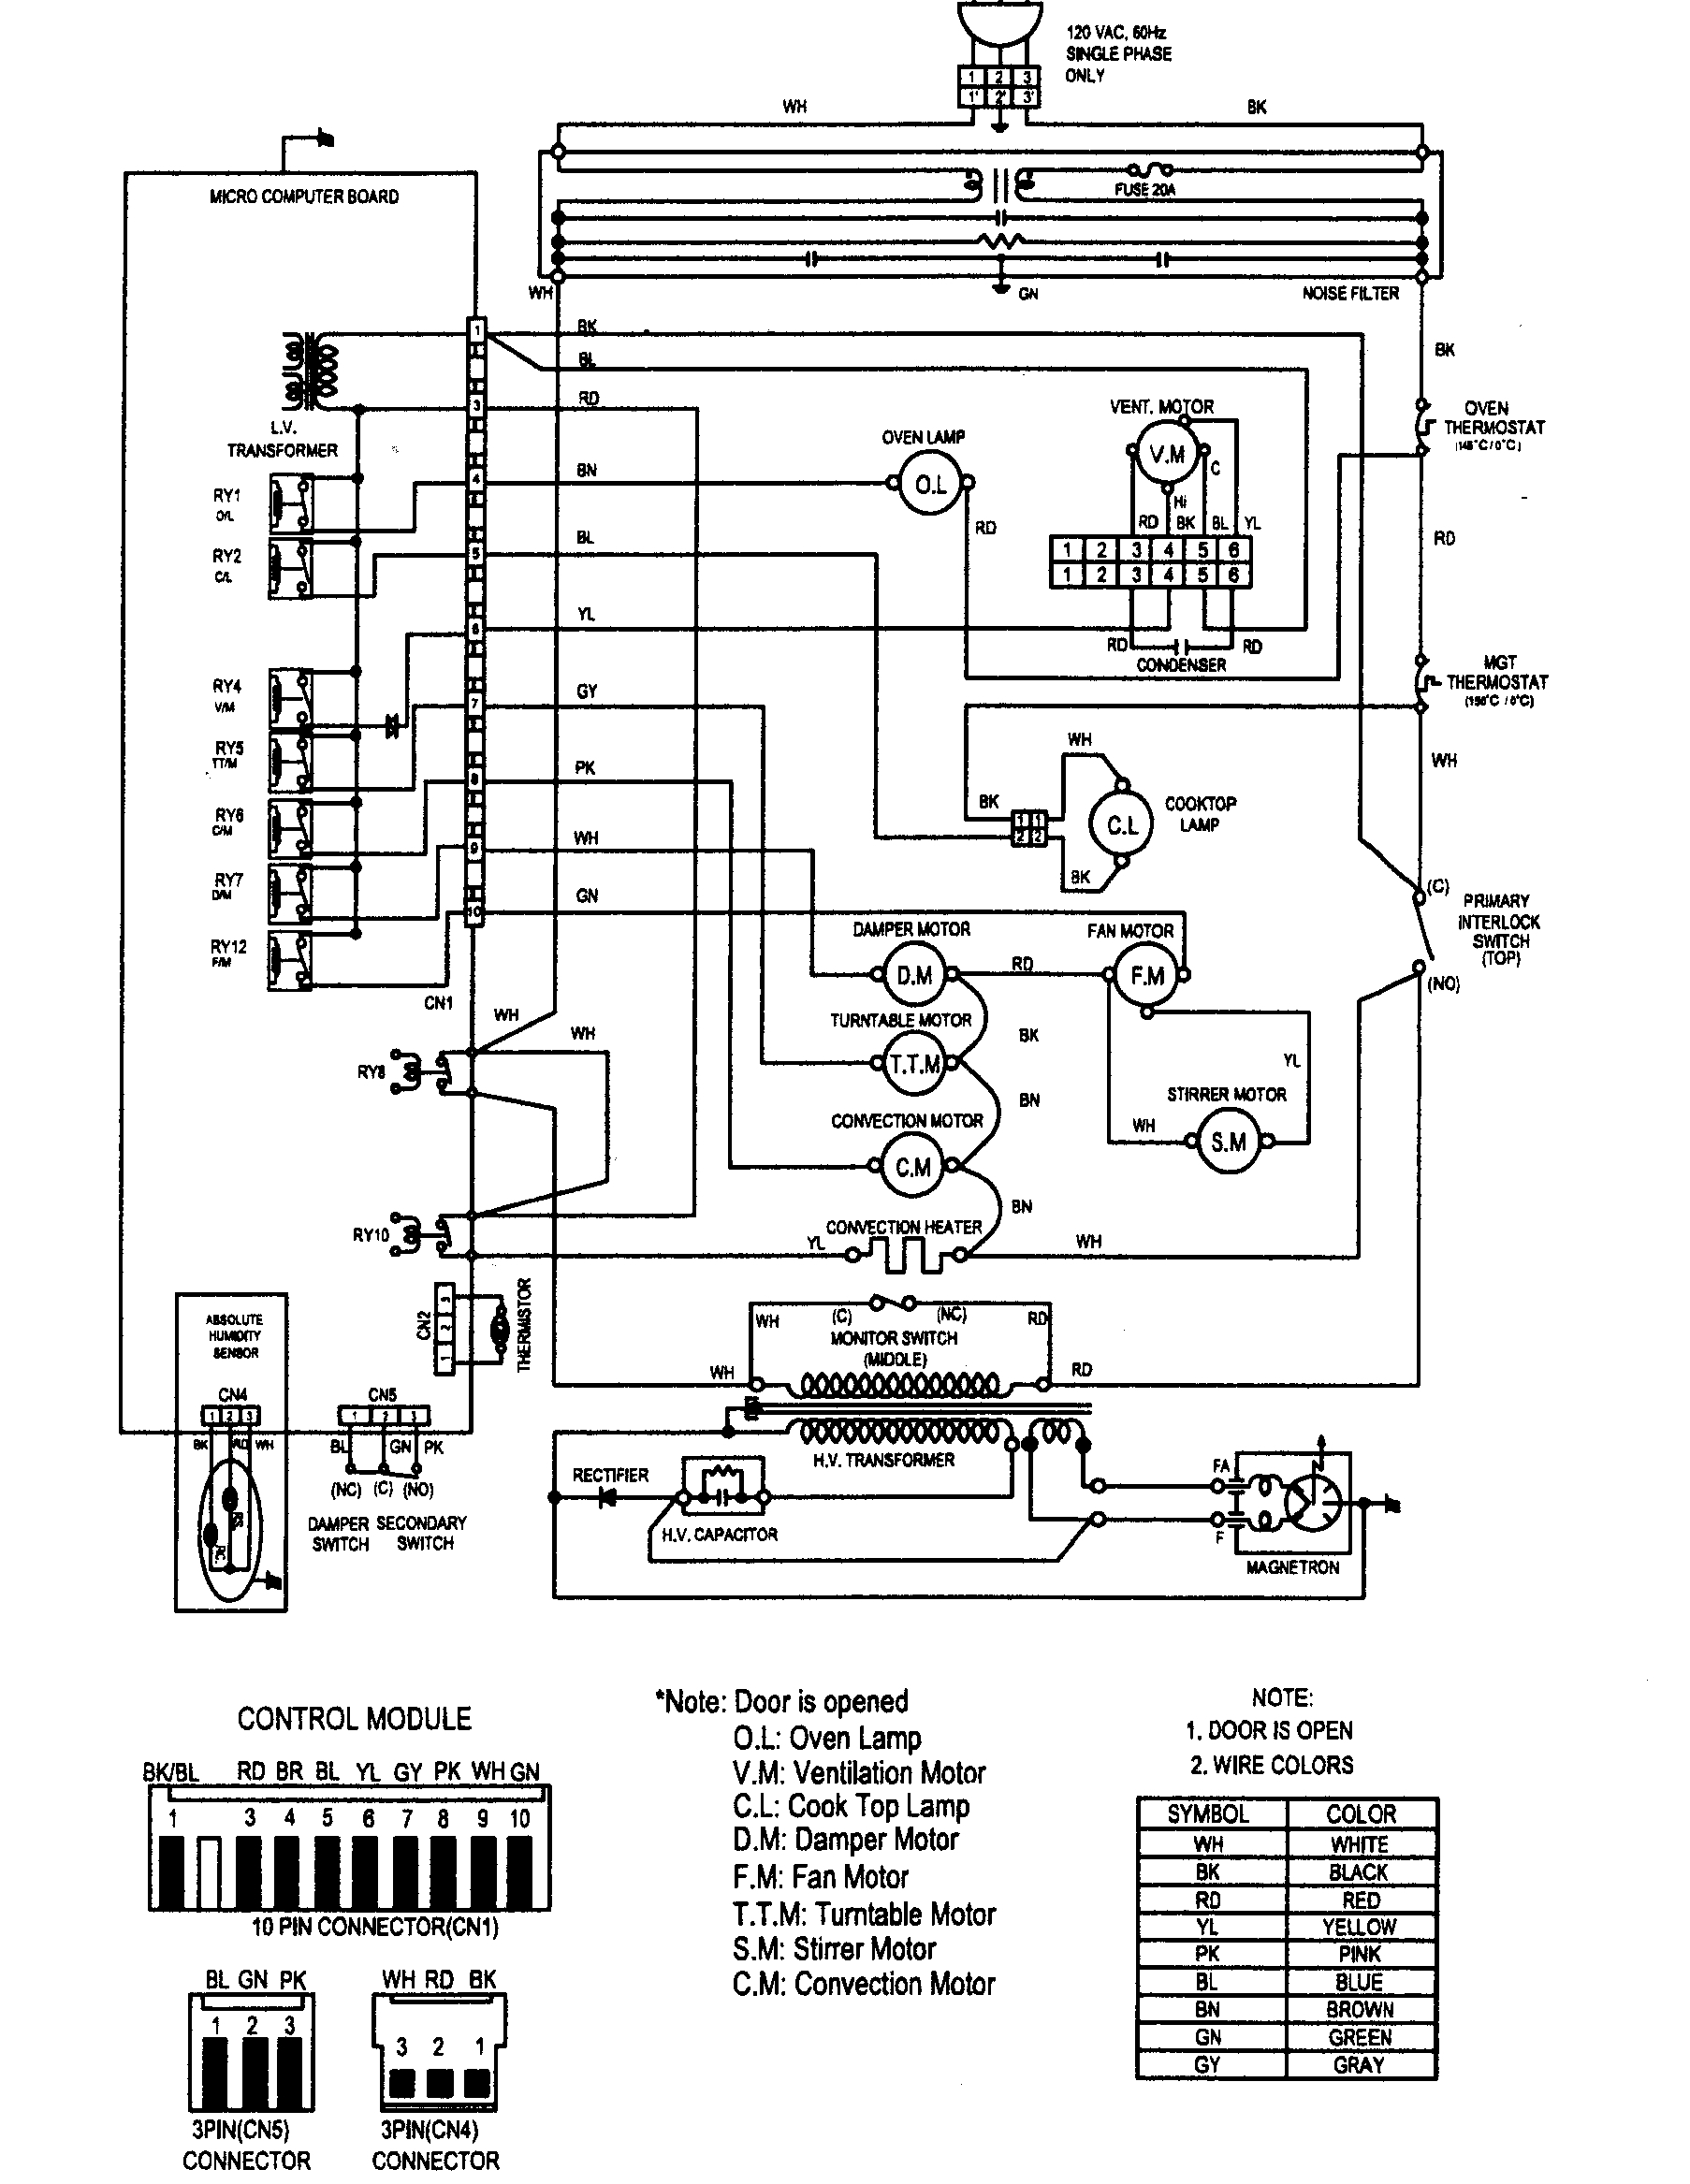 Samsung Electric Range Wiring Diagram